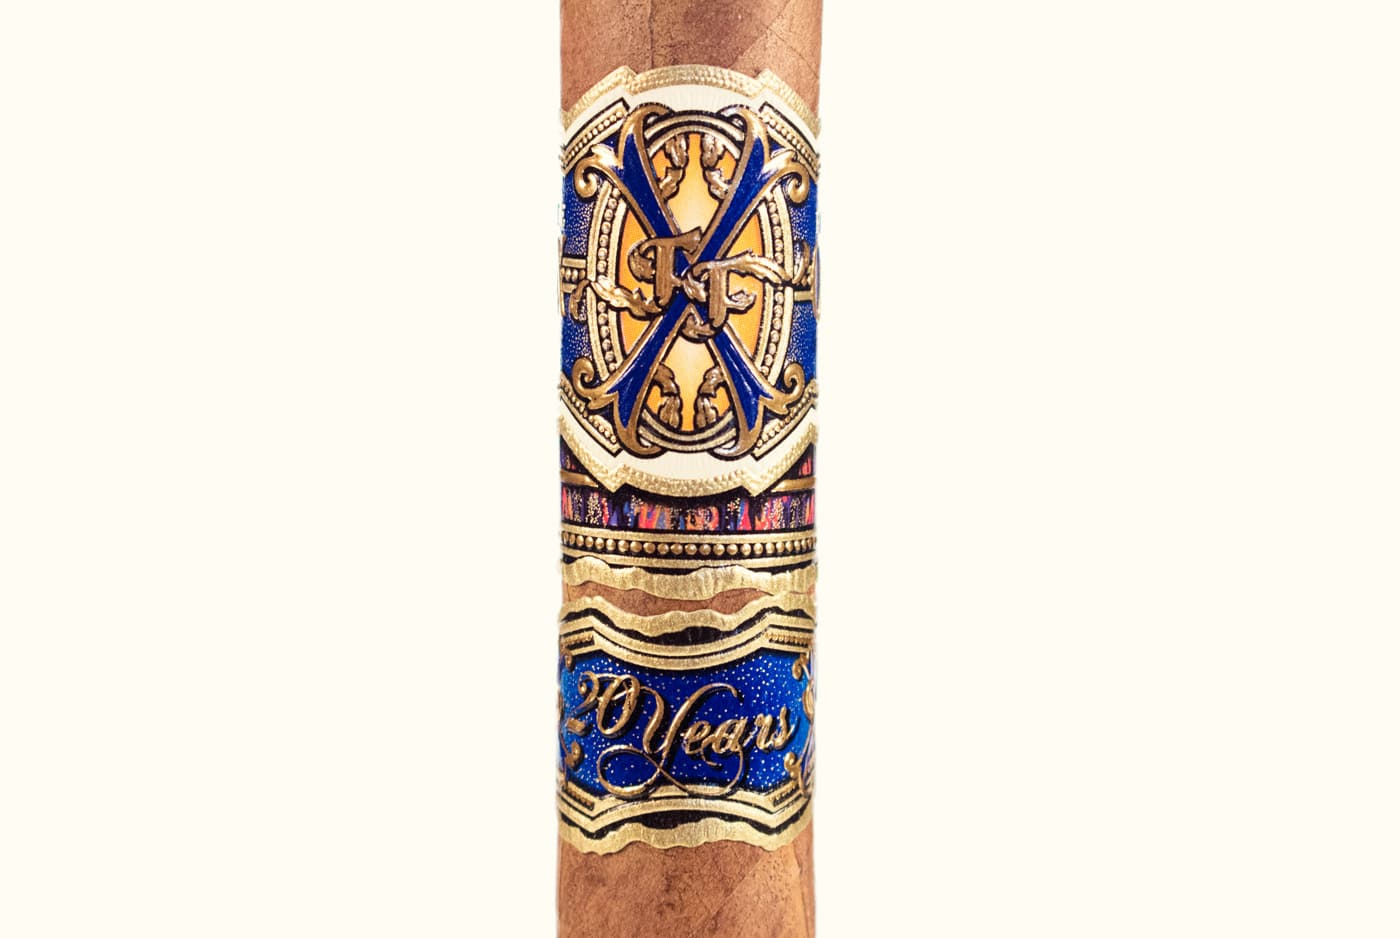 Fuente Fuente OpusX 20 Years Celebration Father & Son cigar review